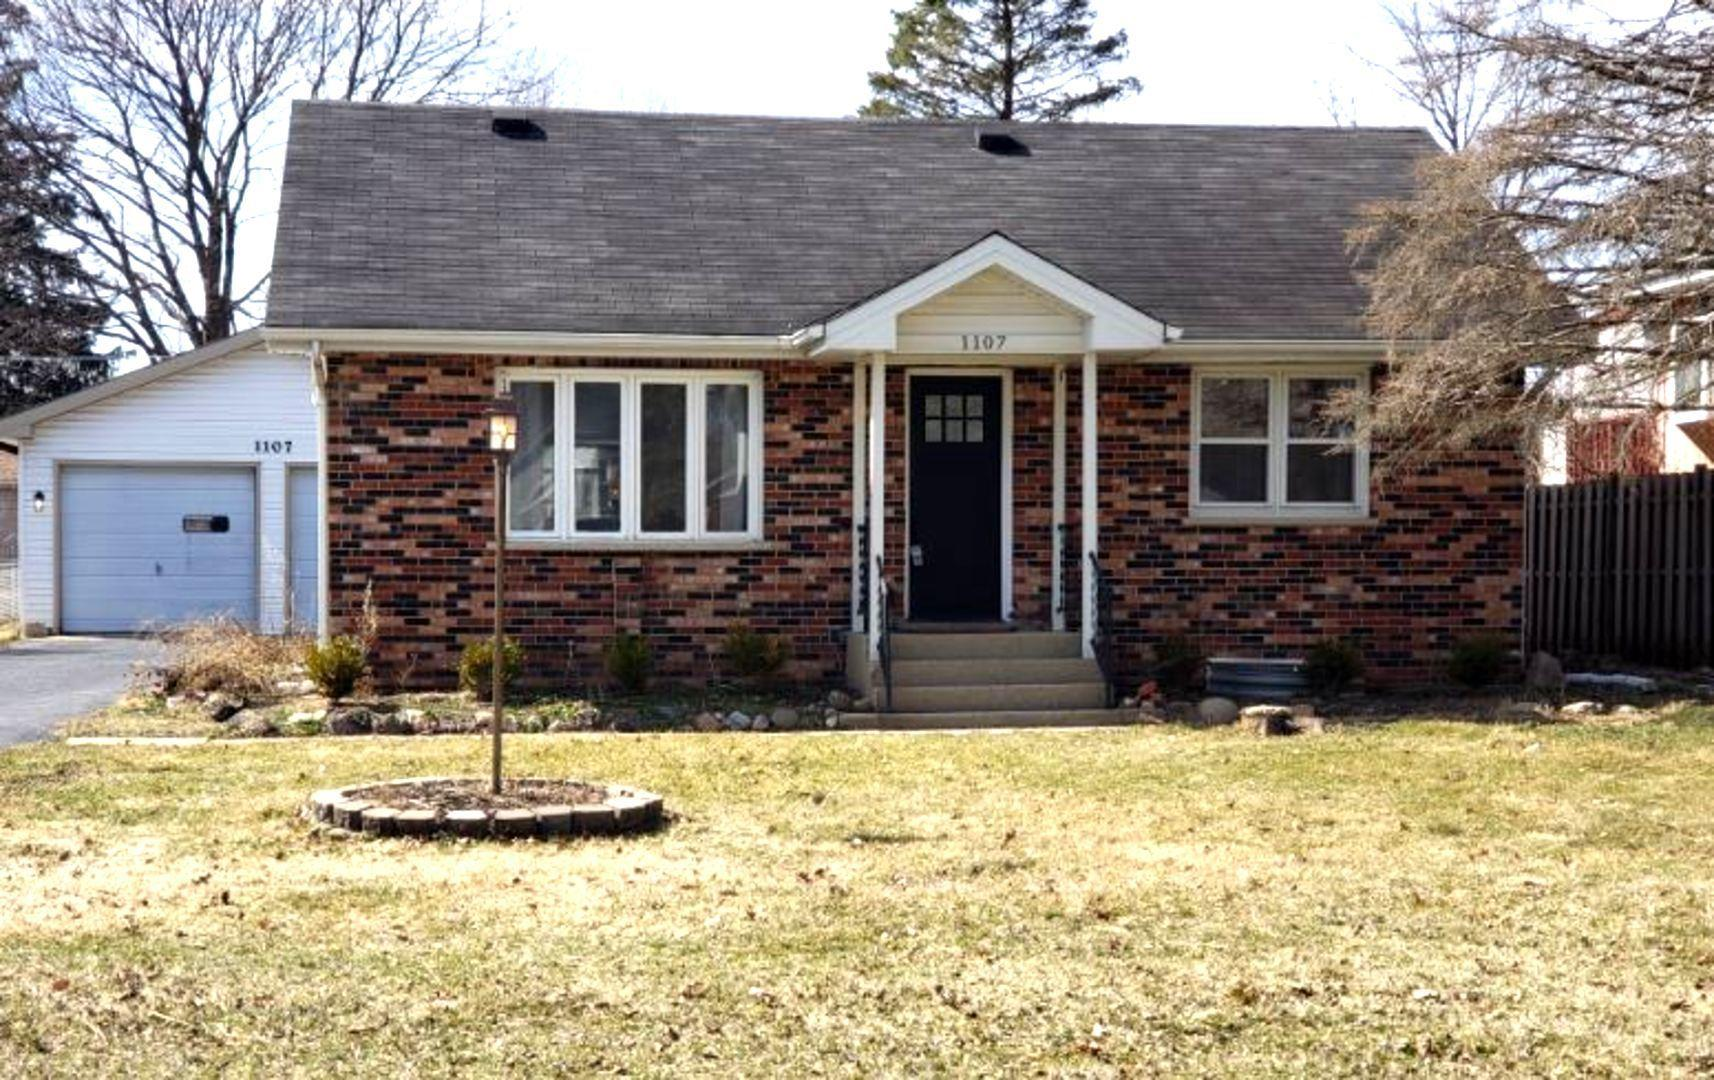 1107 MAPLE Street, Lake in the Hills, IL 60156 - #: 11028209